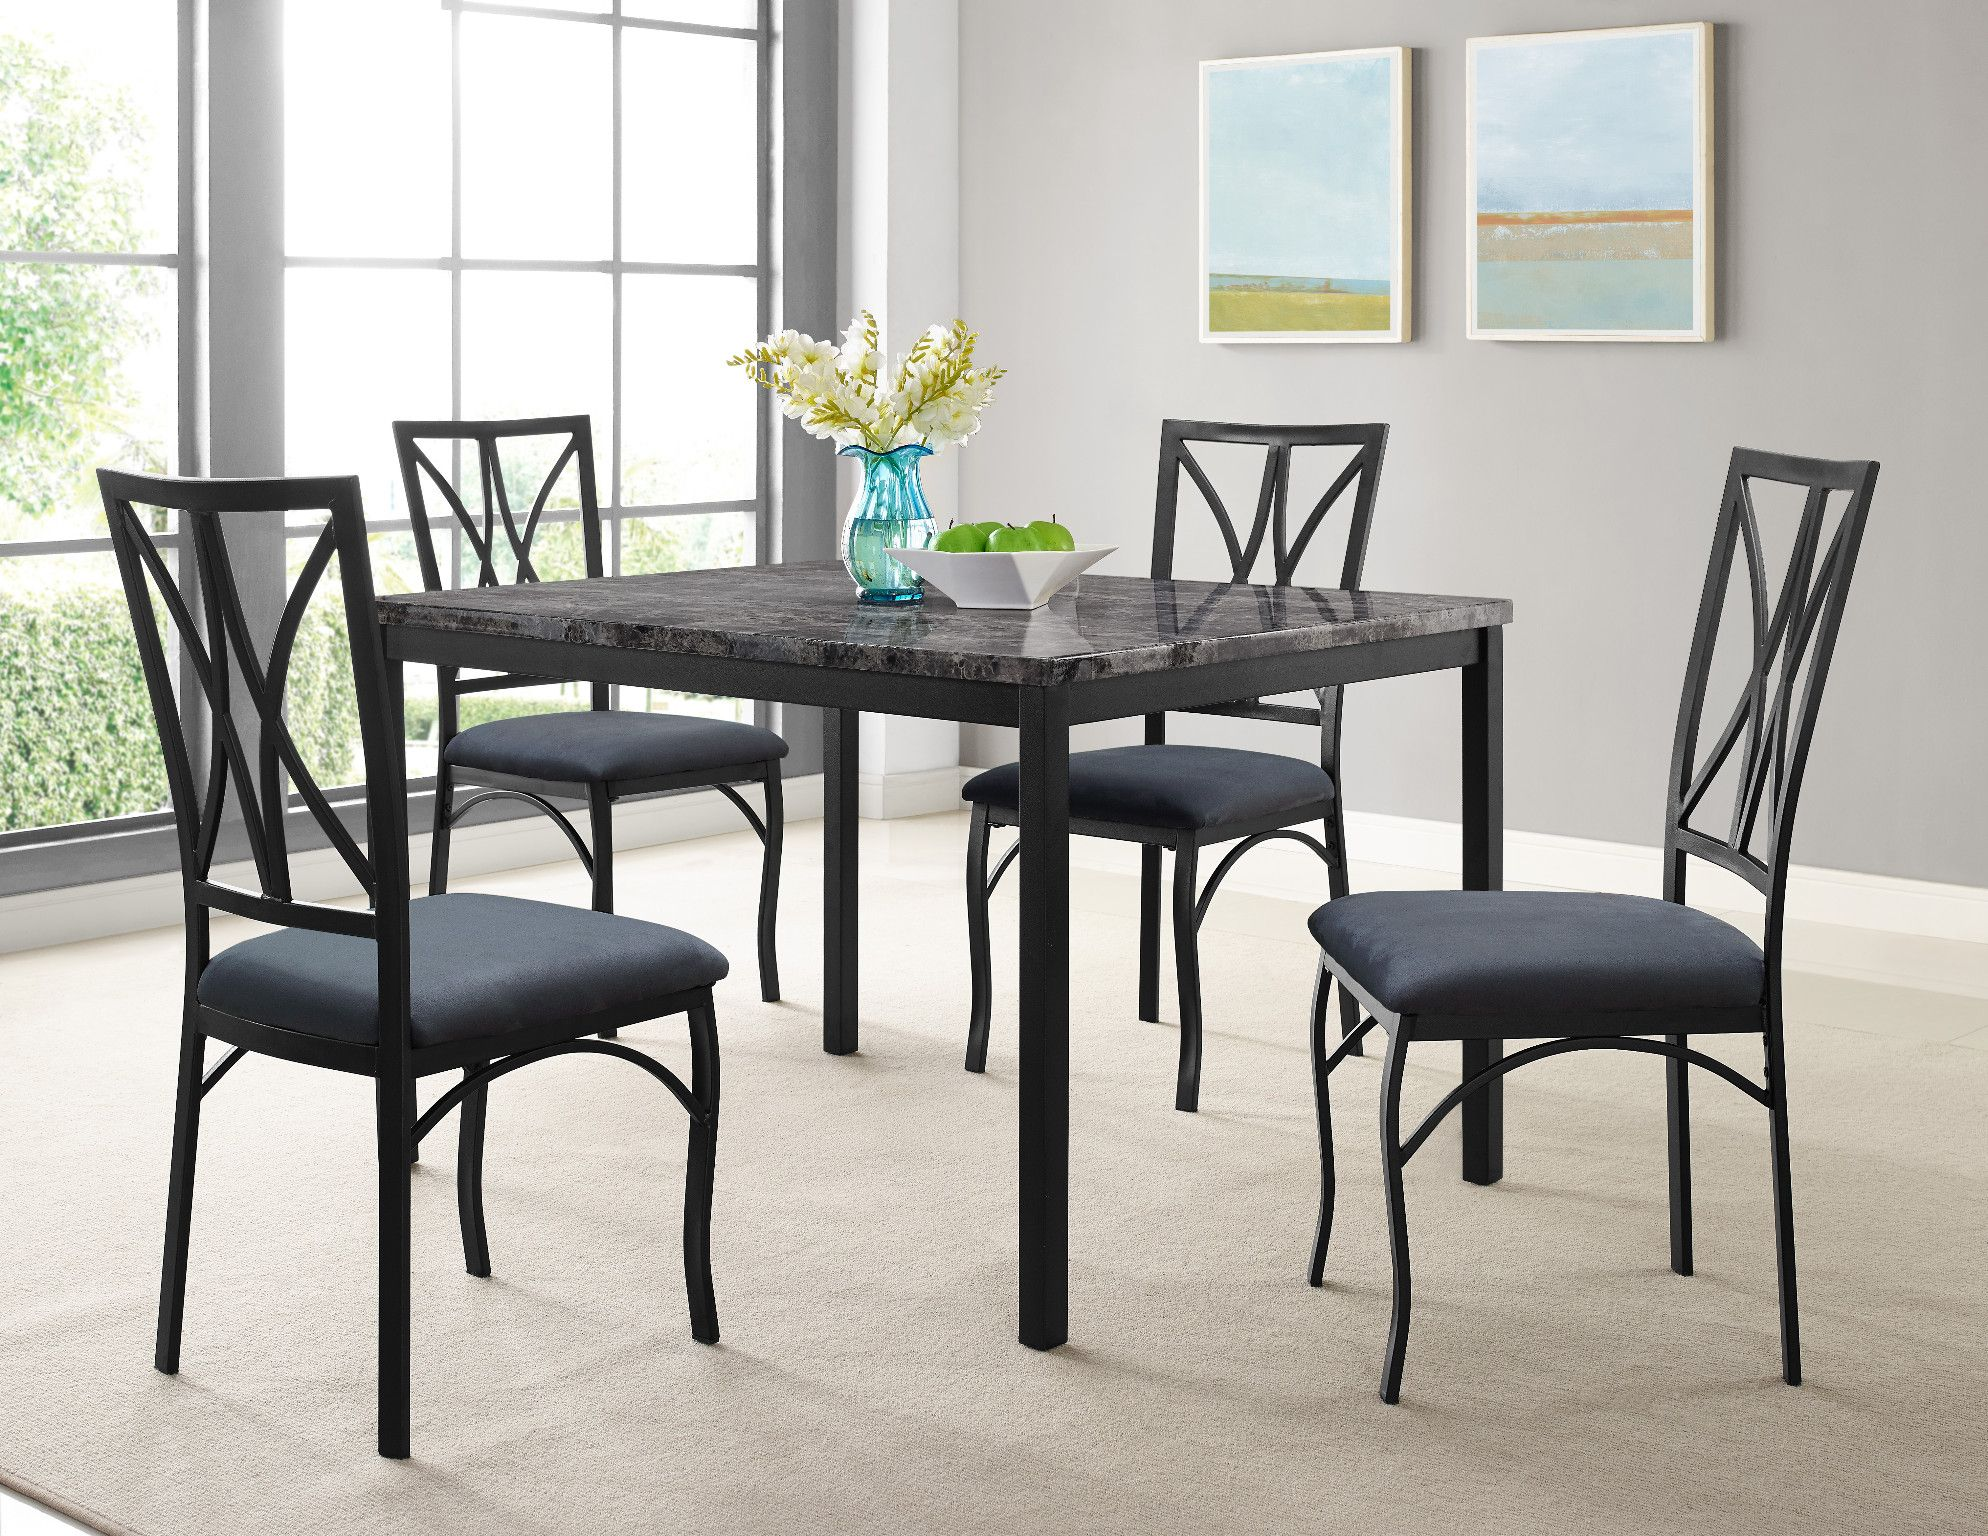 Zeus Faux Marble Top Table And 4 Chairs Rectangular Faux Marble Dining Set With Metal Legs And Chairs This 5 P Furniture Trending Decor Home Decor Trends